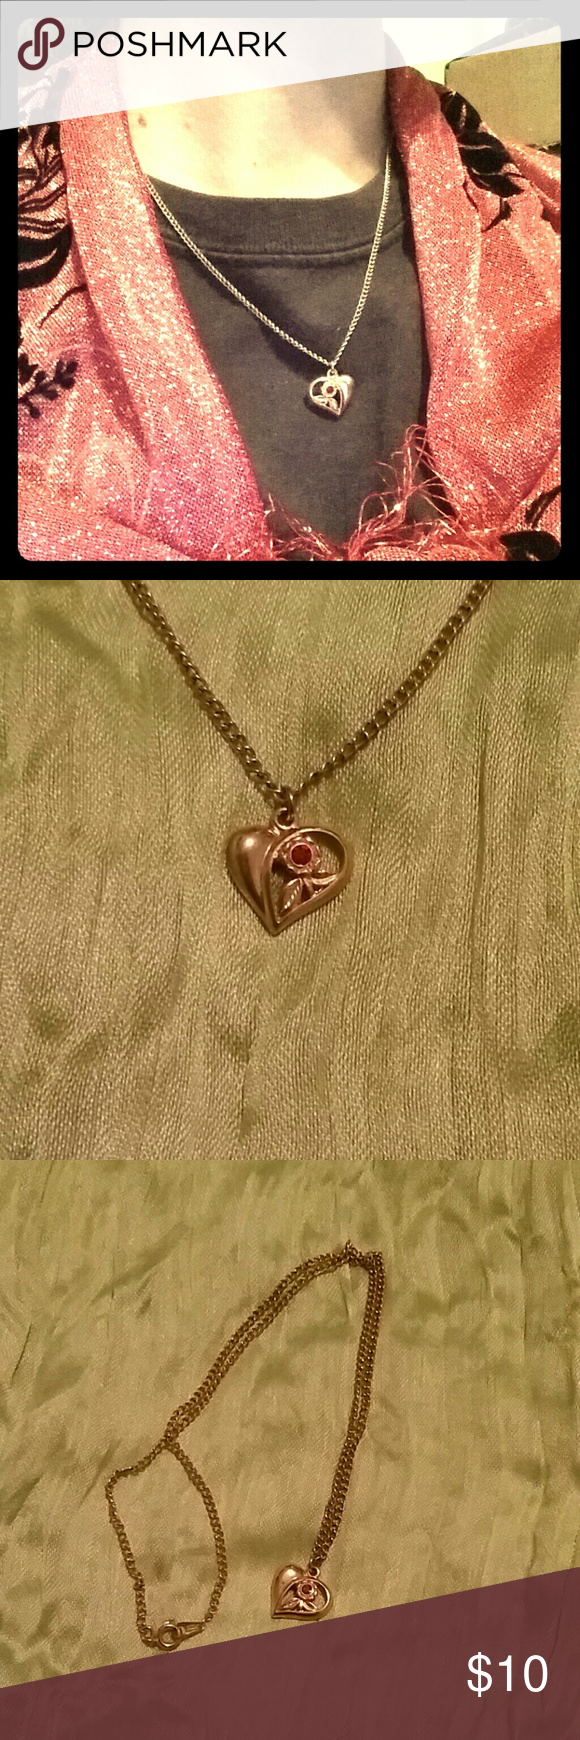 Gold coloured heart necklace with red stone 17 inch chain with circular clasp. Jewelry Necklaces